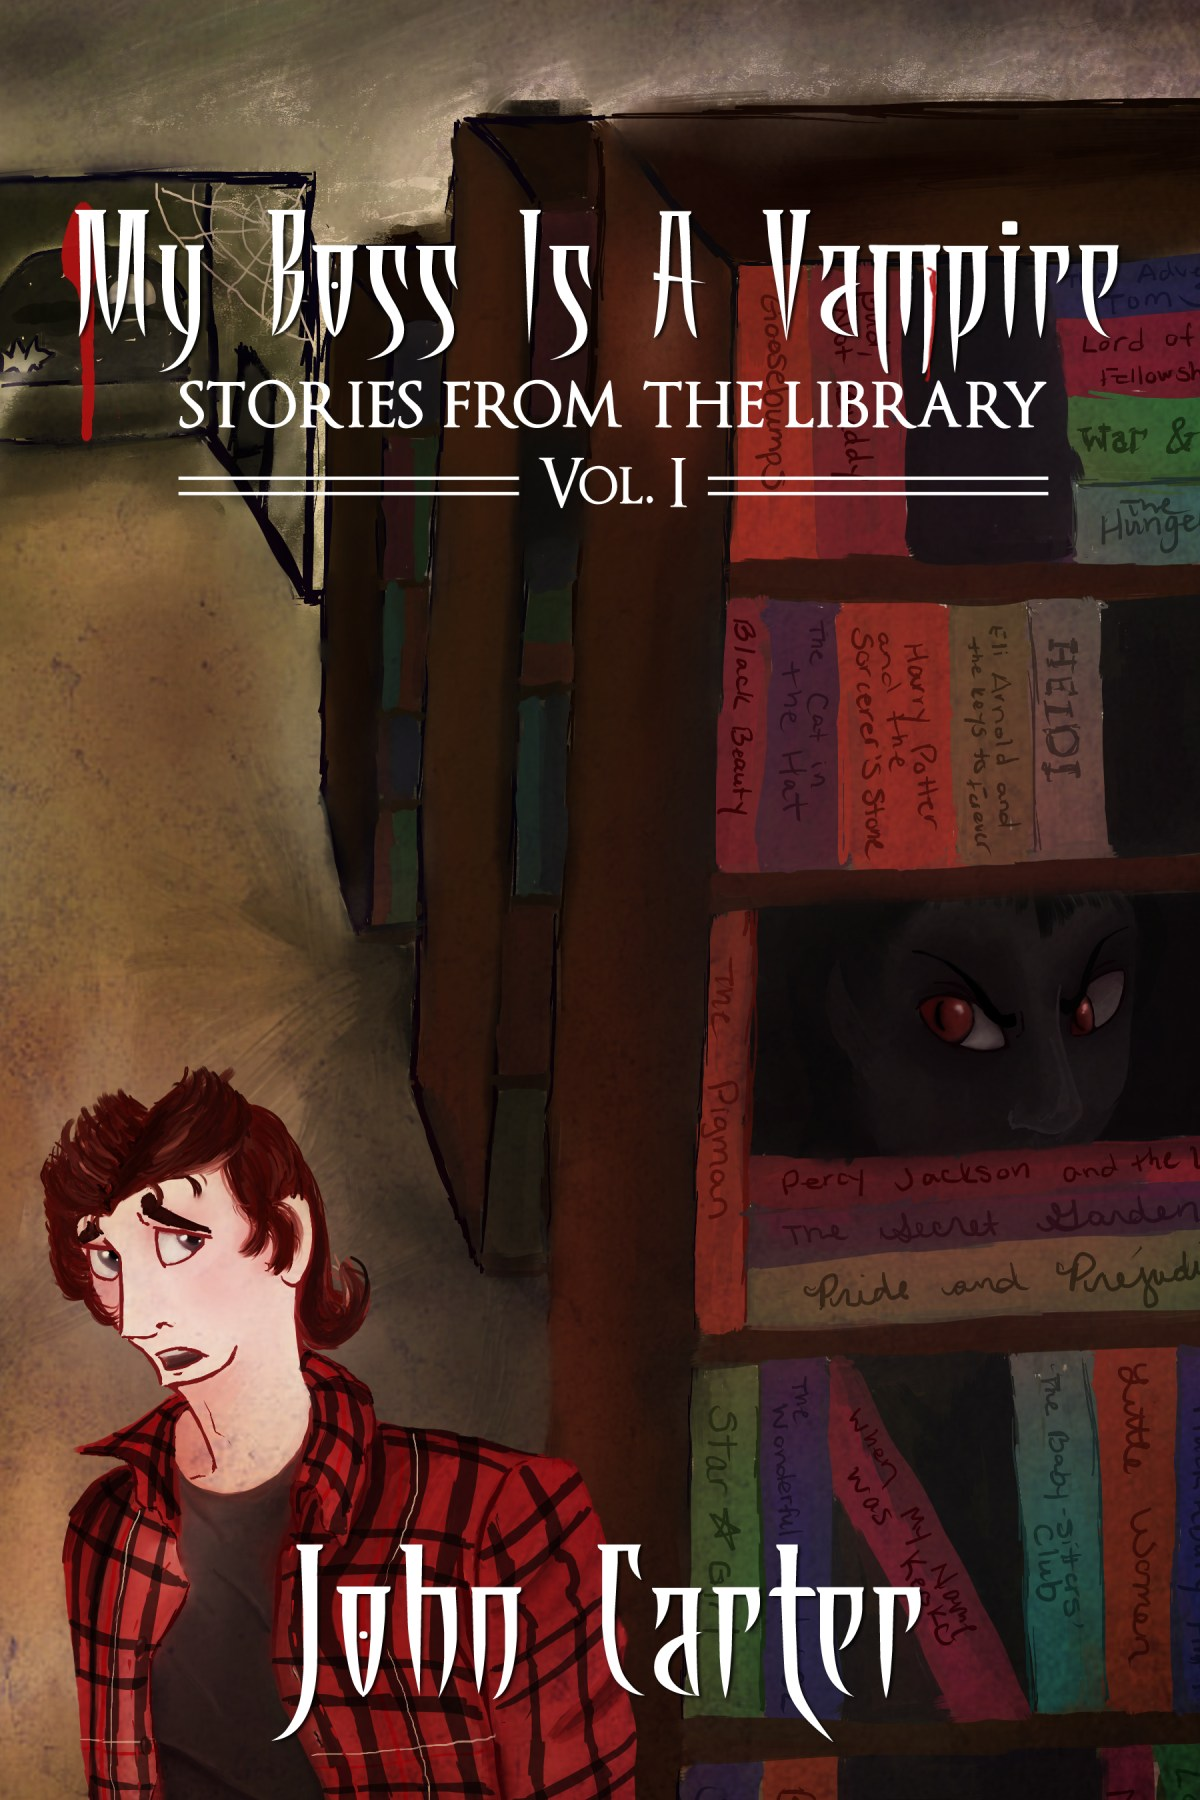 My Boss is a Vampire: Stories from the Library, Vol. 1 by John Carter